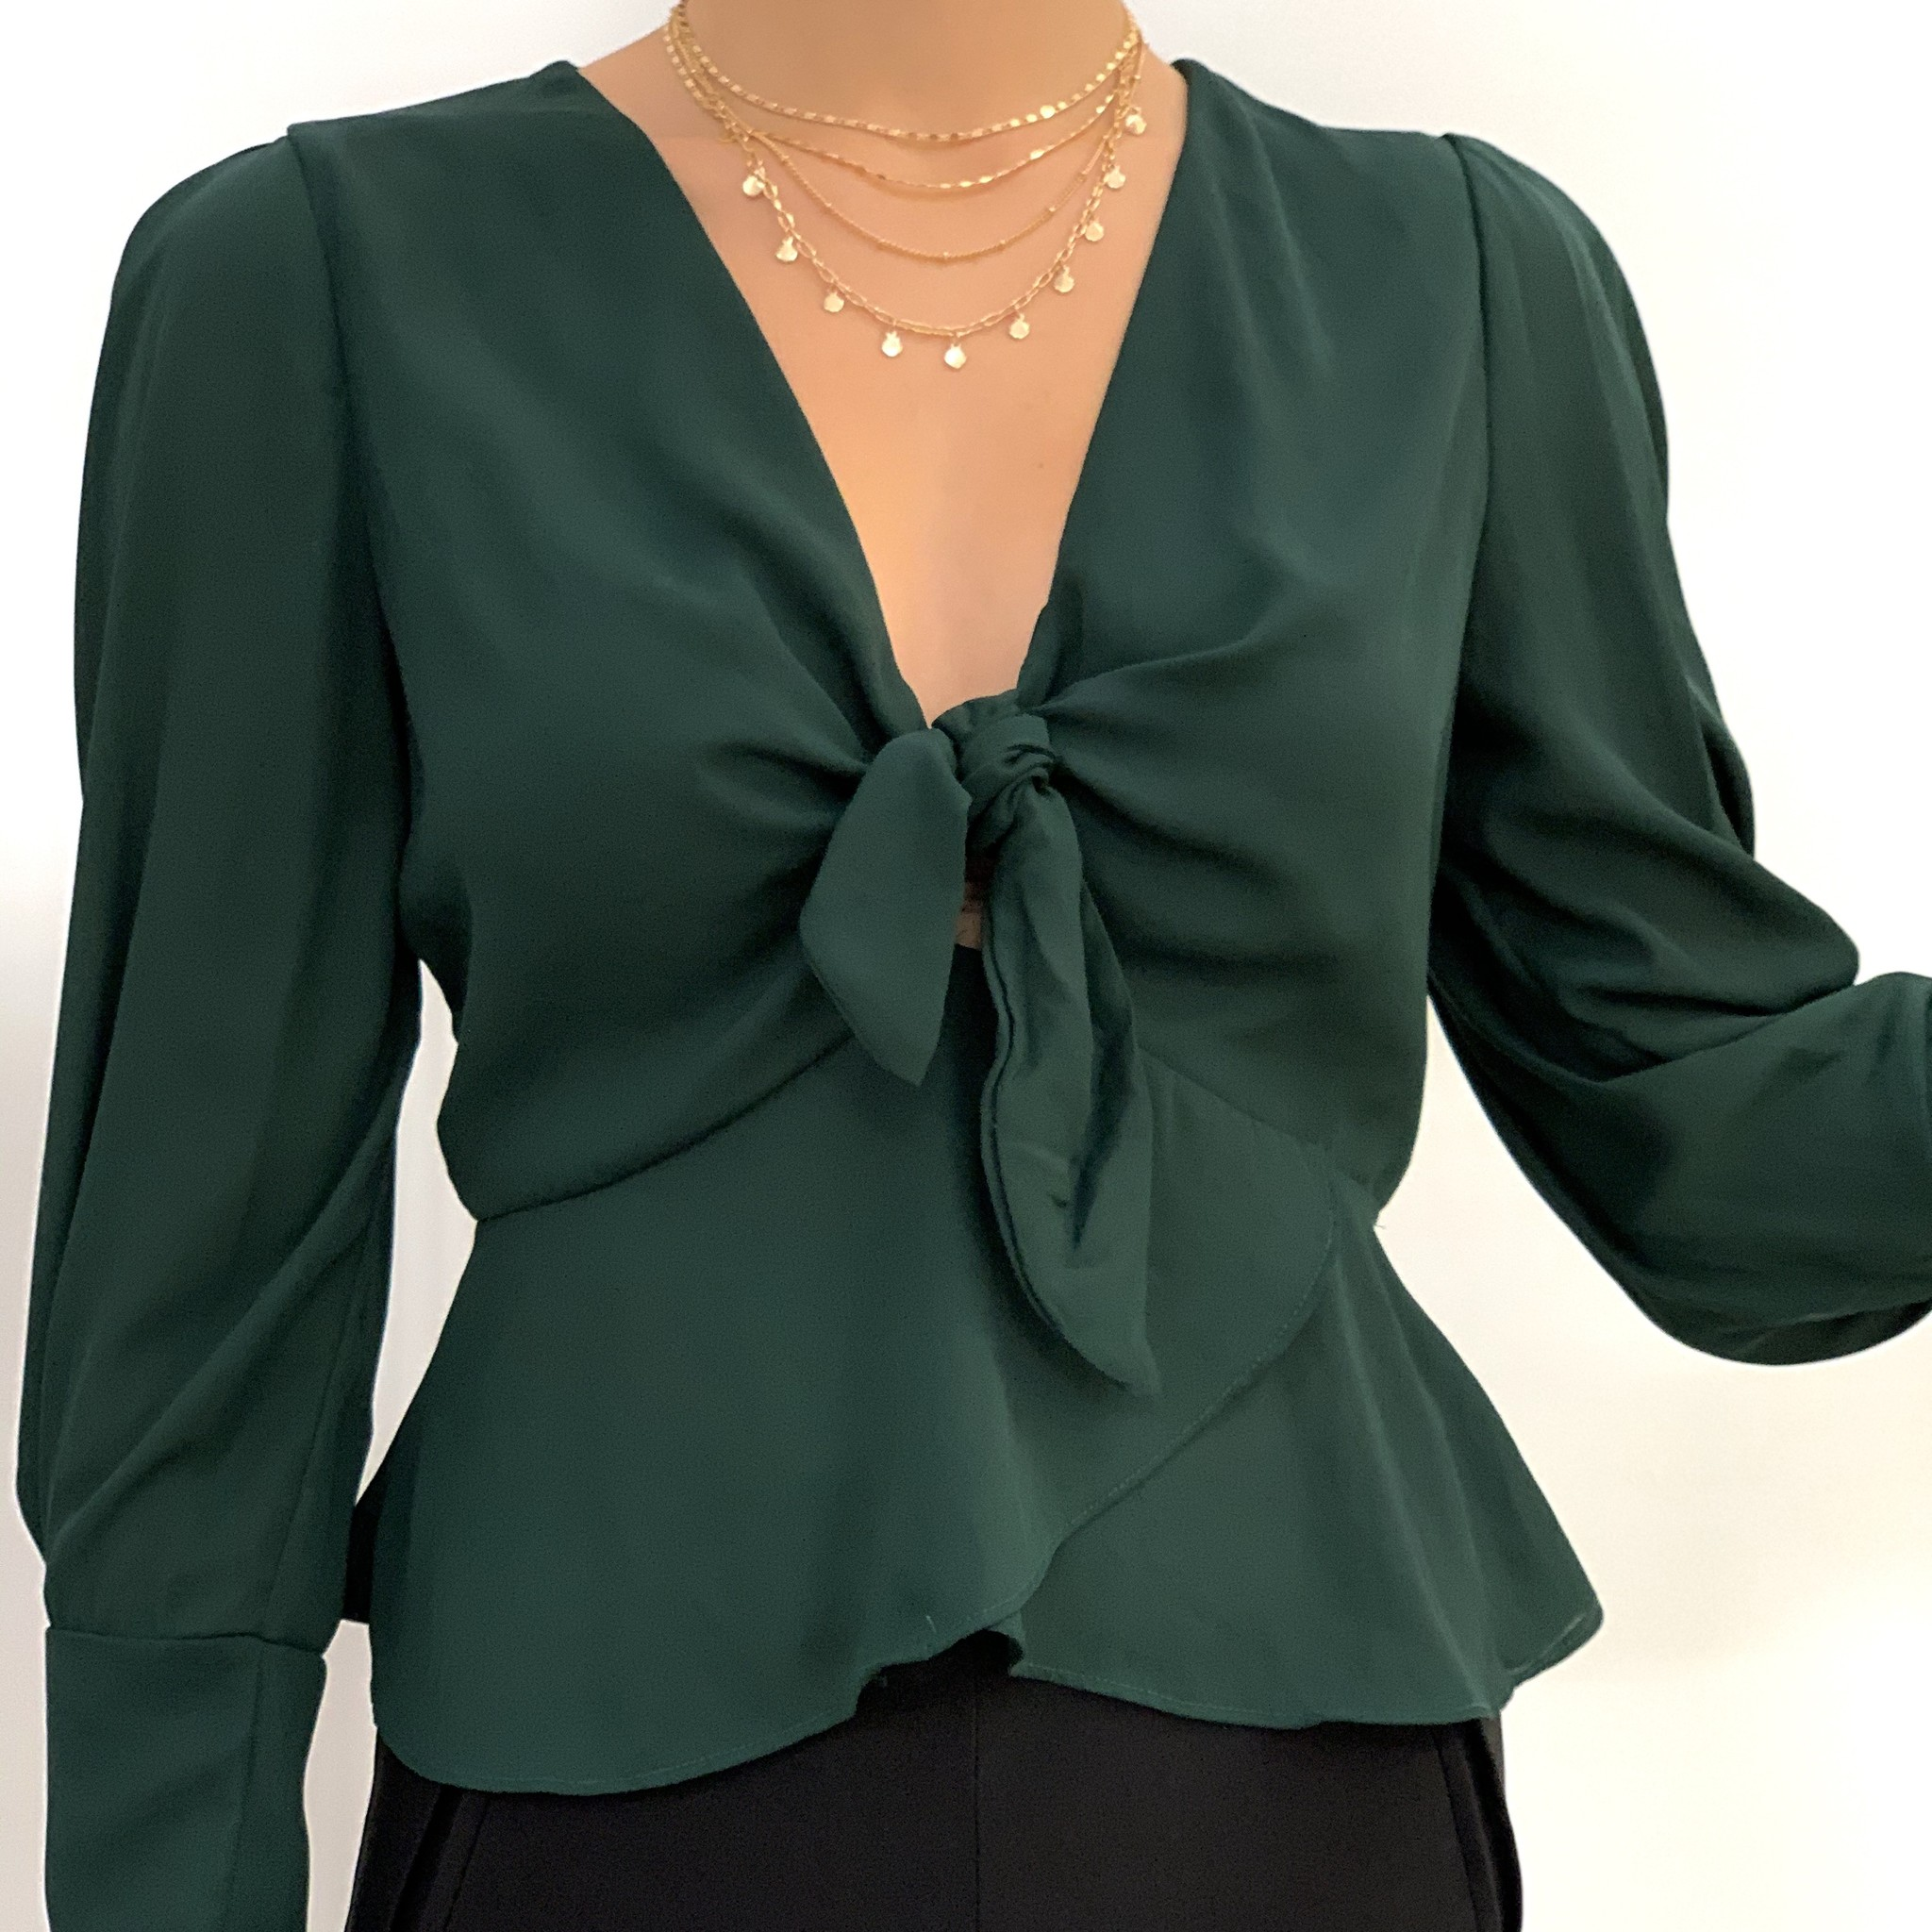 tulip peplum top